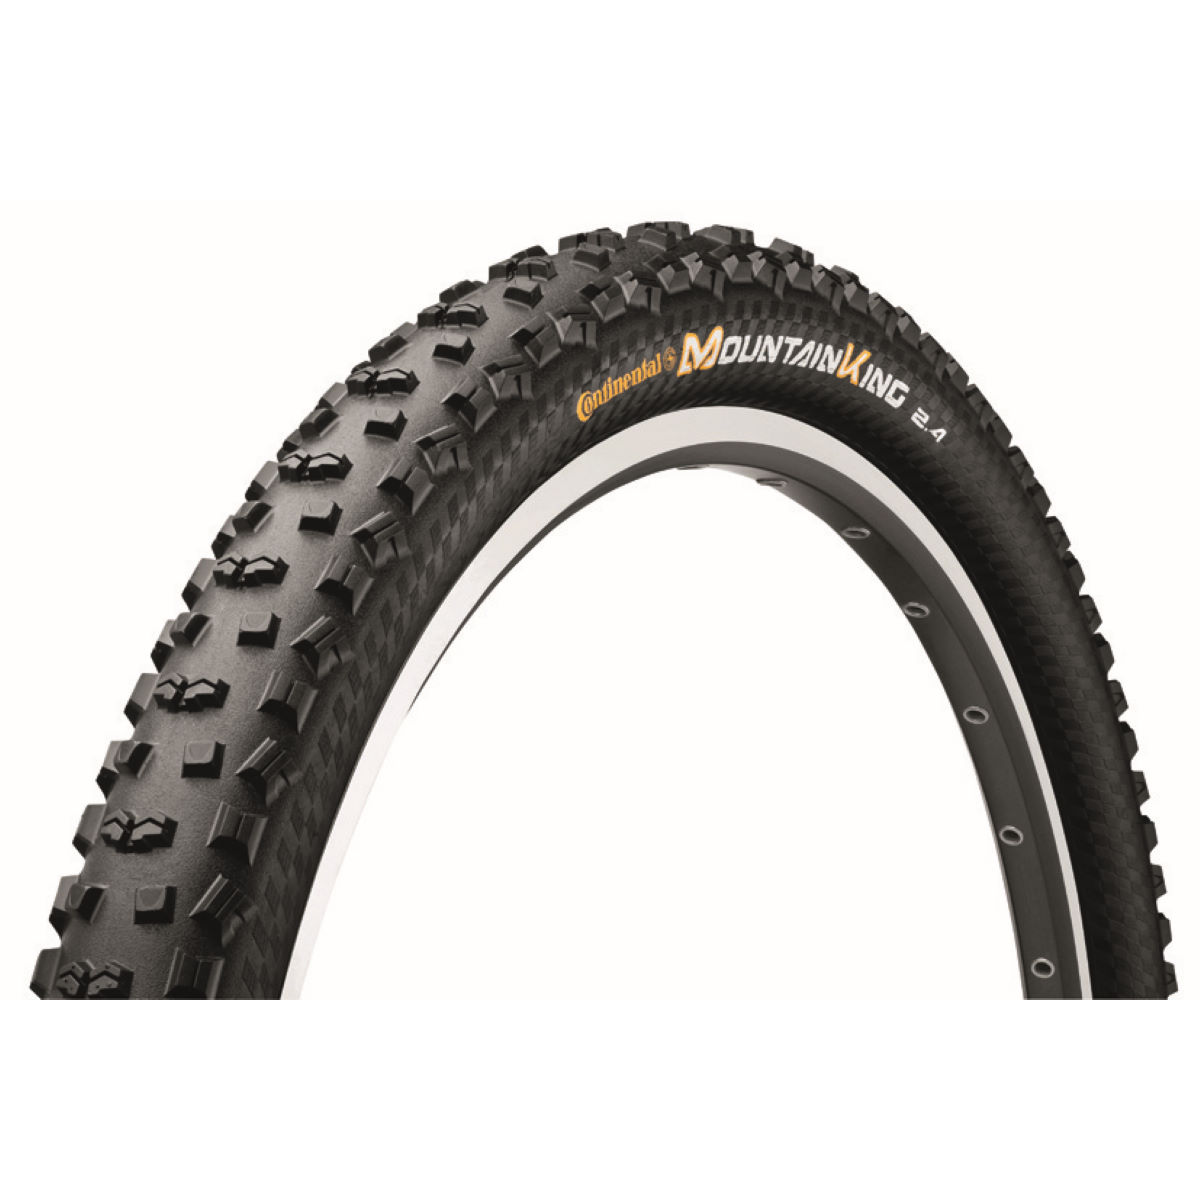 Continental Mountain King II MTB Tyre - Cubiertas MTB